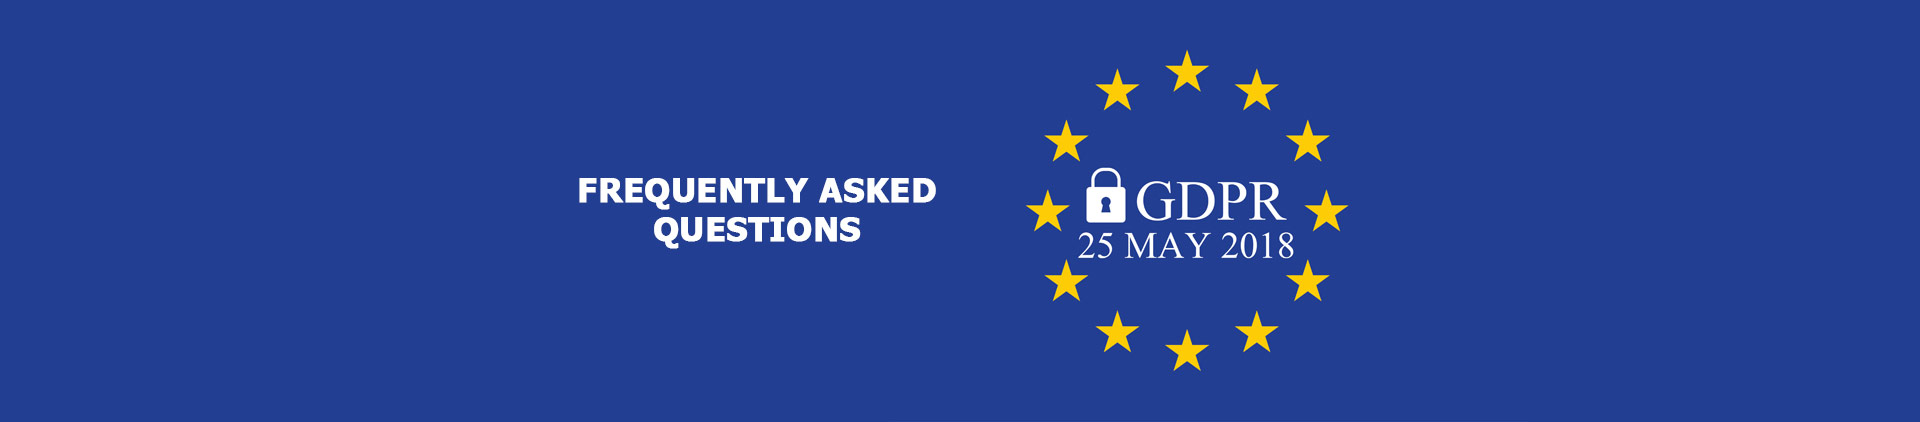 GDPR: Frequently Asked Questions